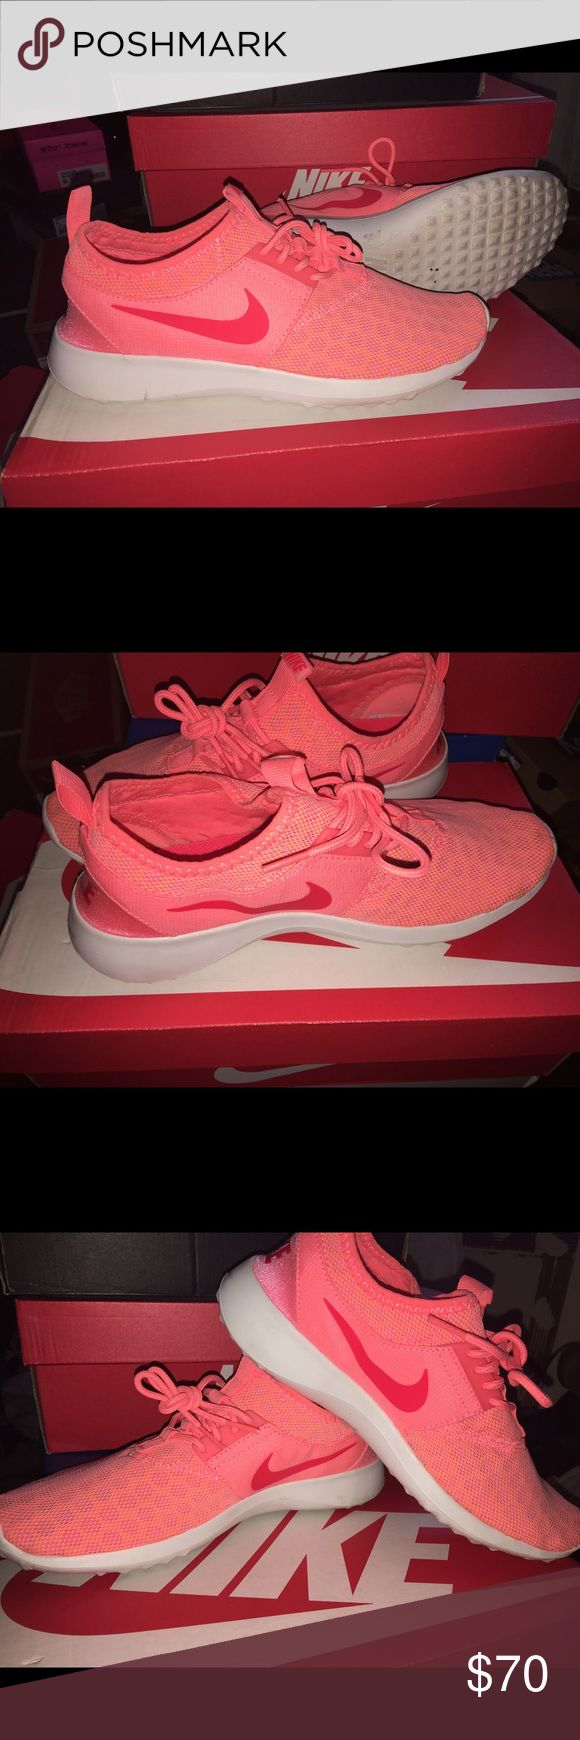 SOLD!!! Pink and white running sneakers,Nike slide ons Nike Shoes Athletic Shoes